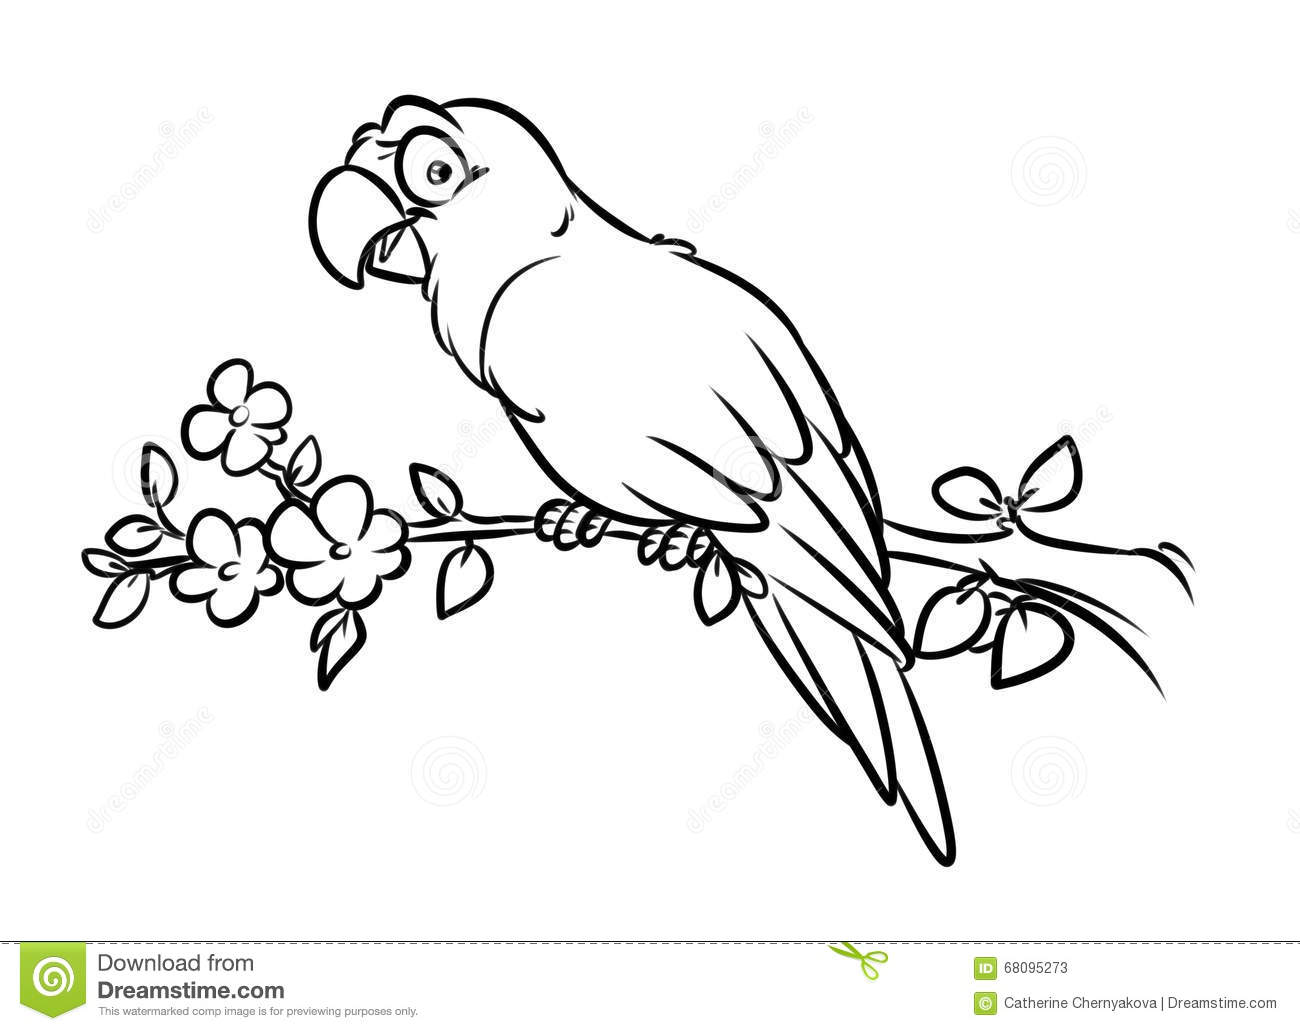 Coloring pages trees and flowers - Royalty Free Illustration Download Parrot Coloring Pages